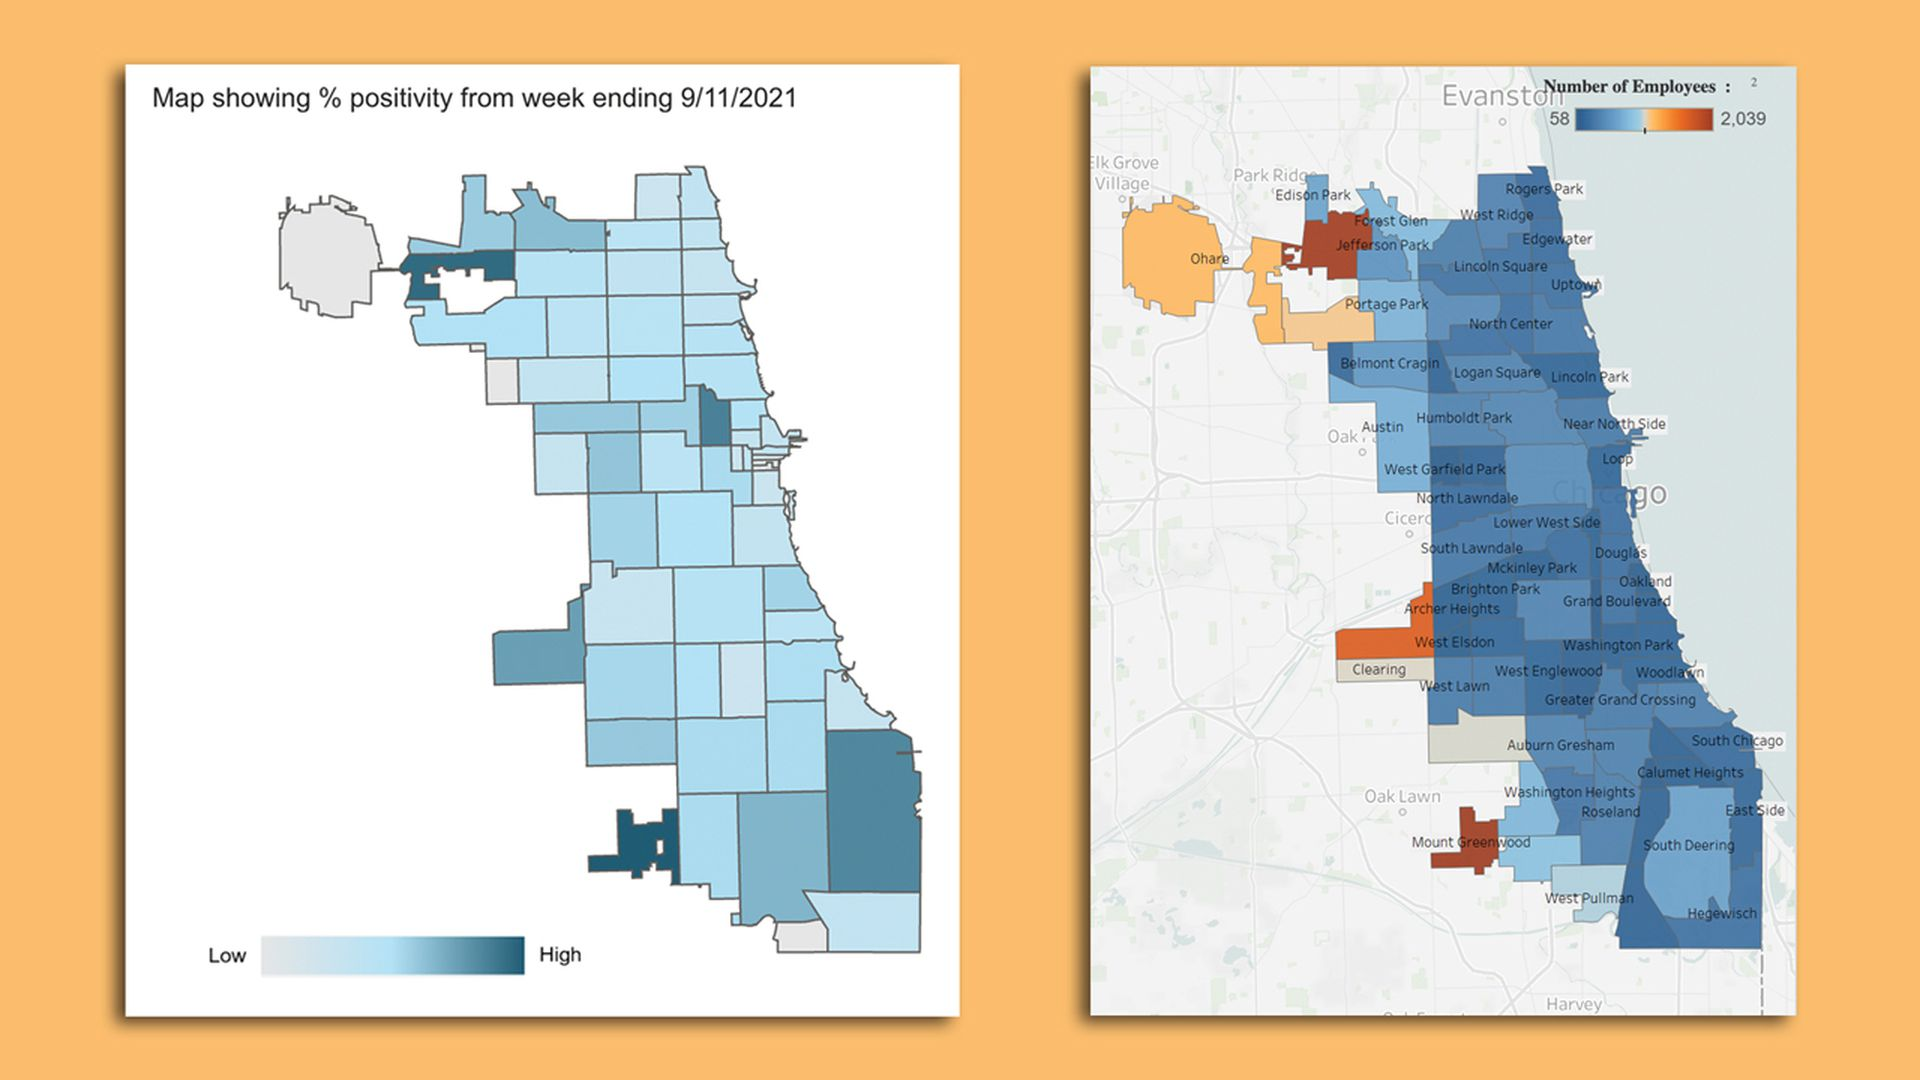 Map showing dark blue zones in the northwest and southwest corners of Chicago.